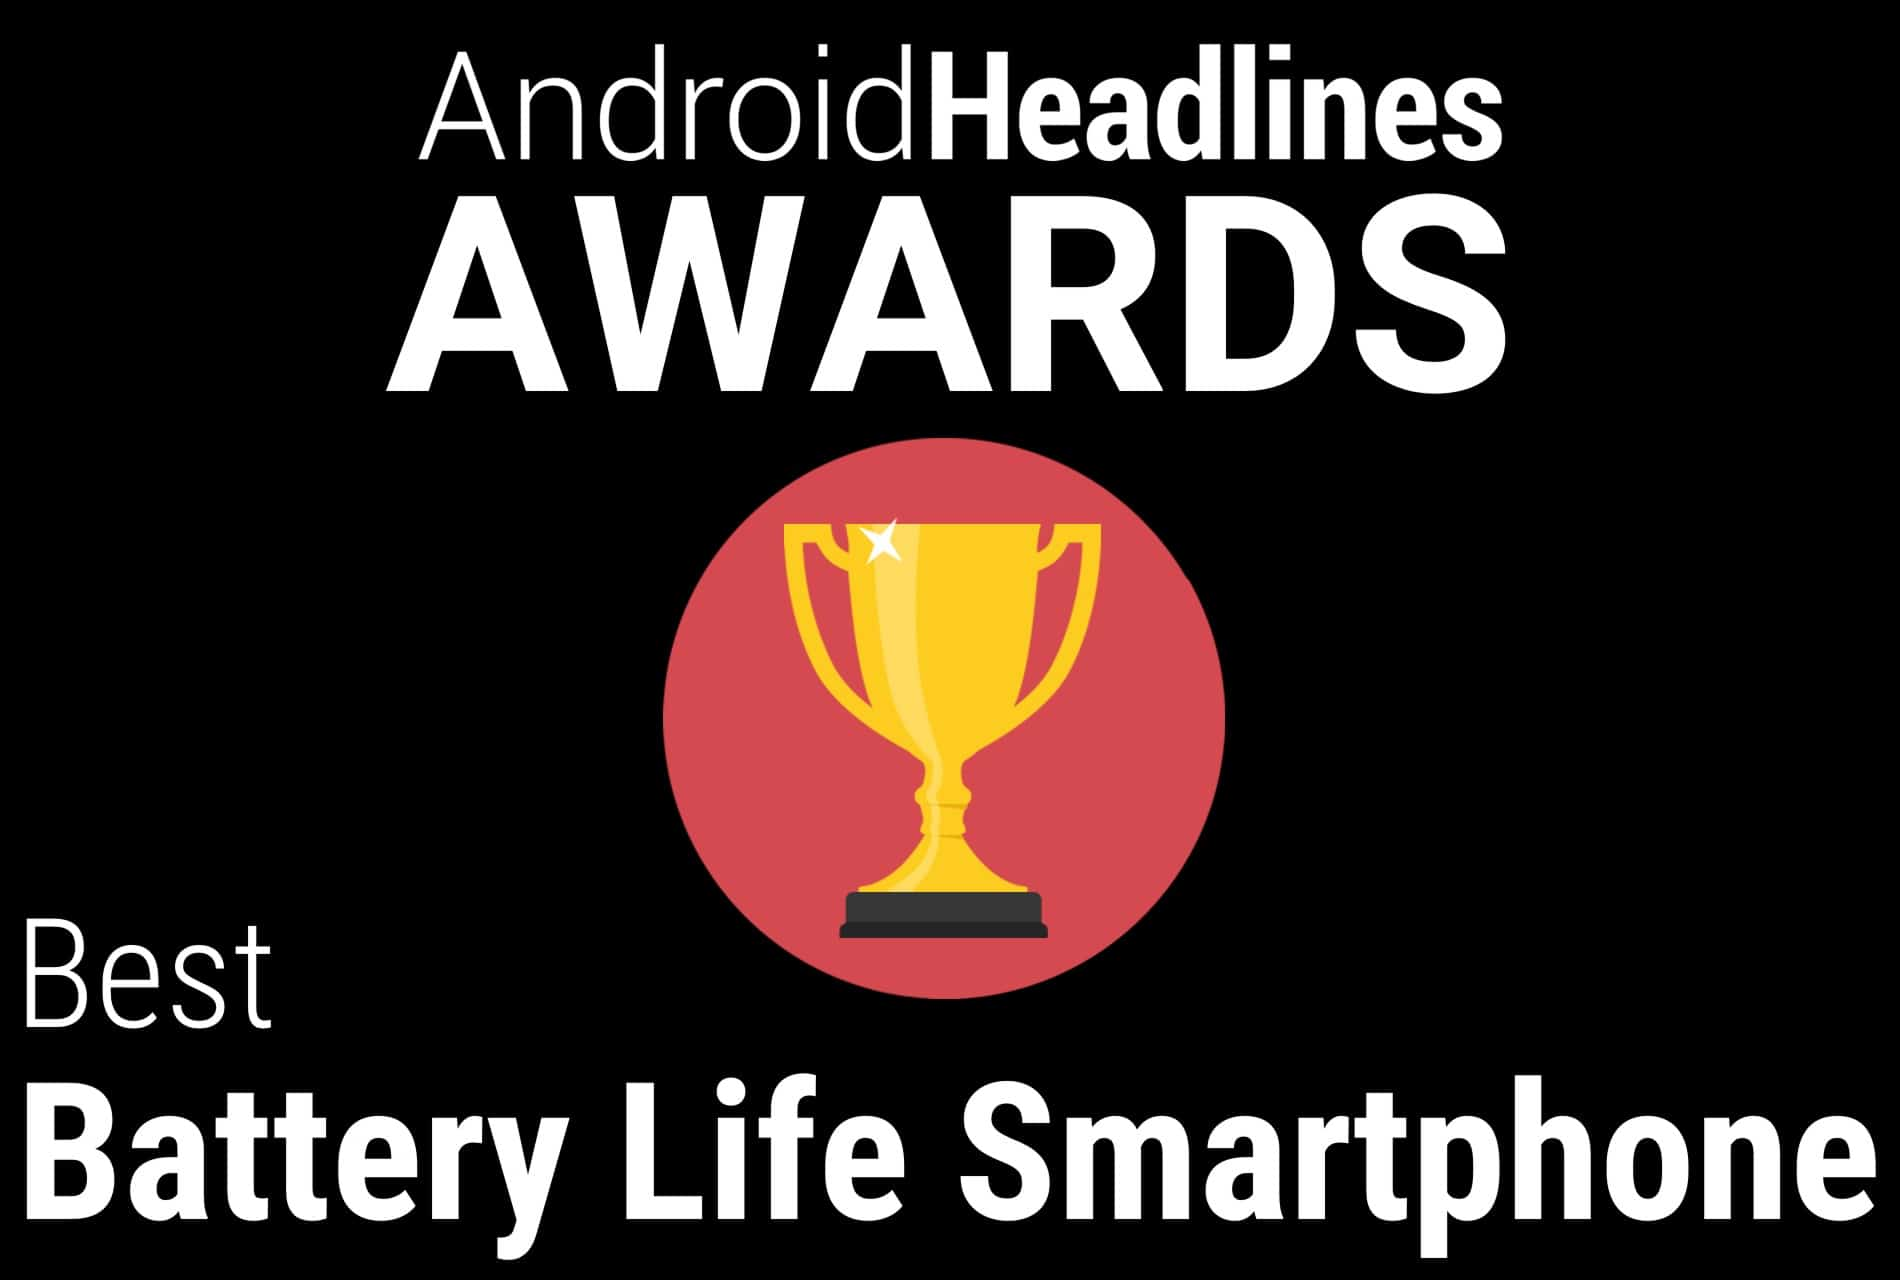 AH Awards Best Battery Life Smartphone